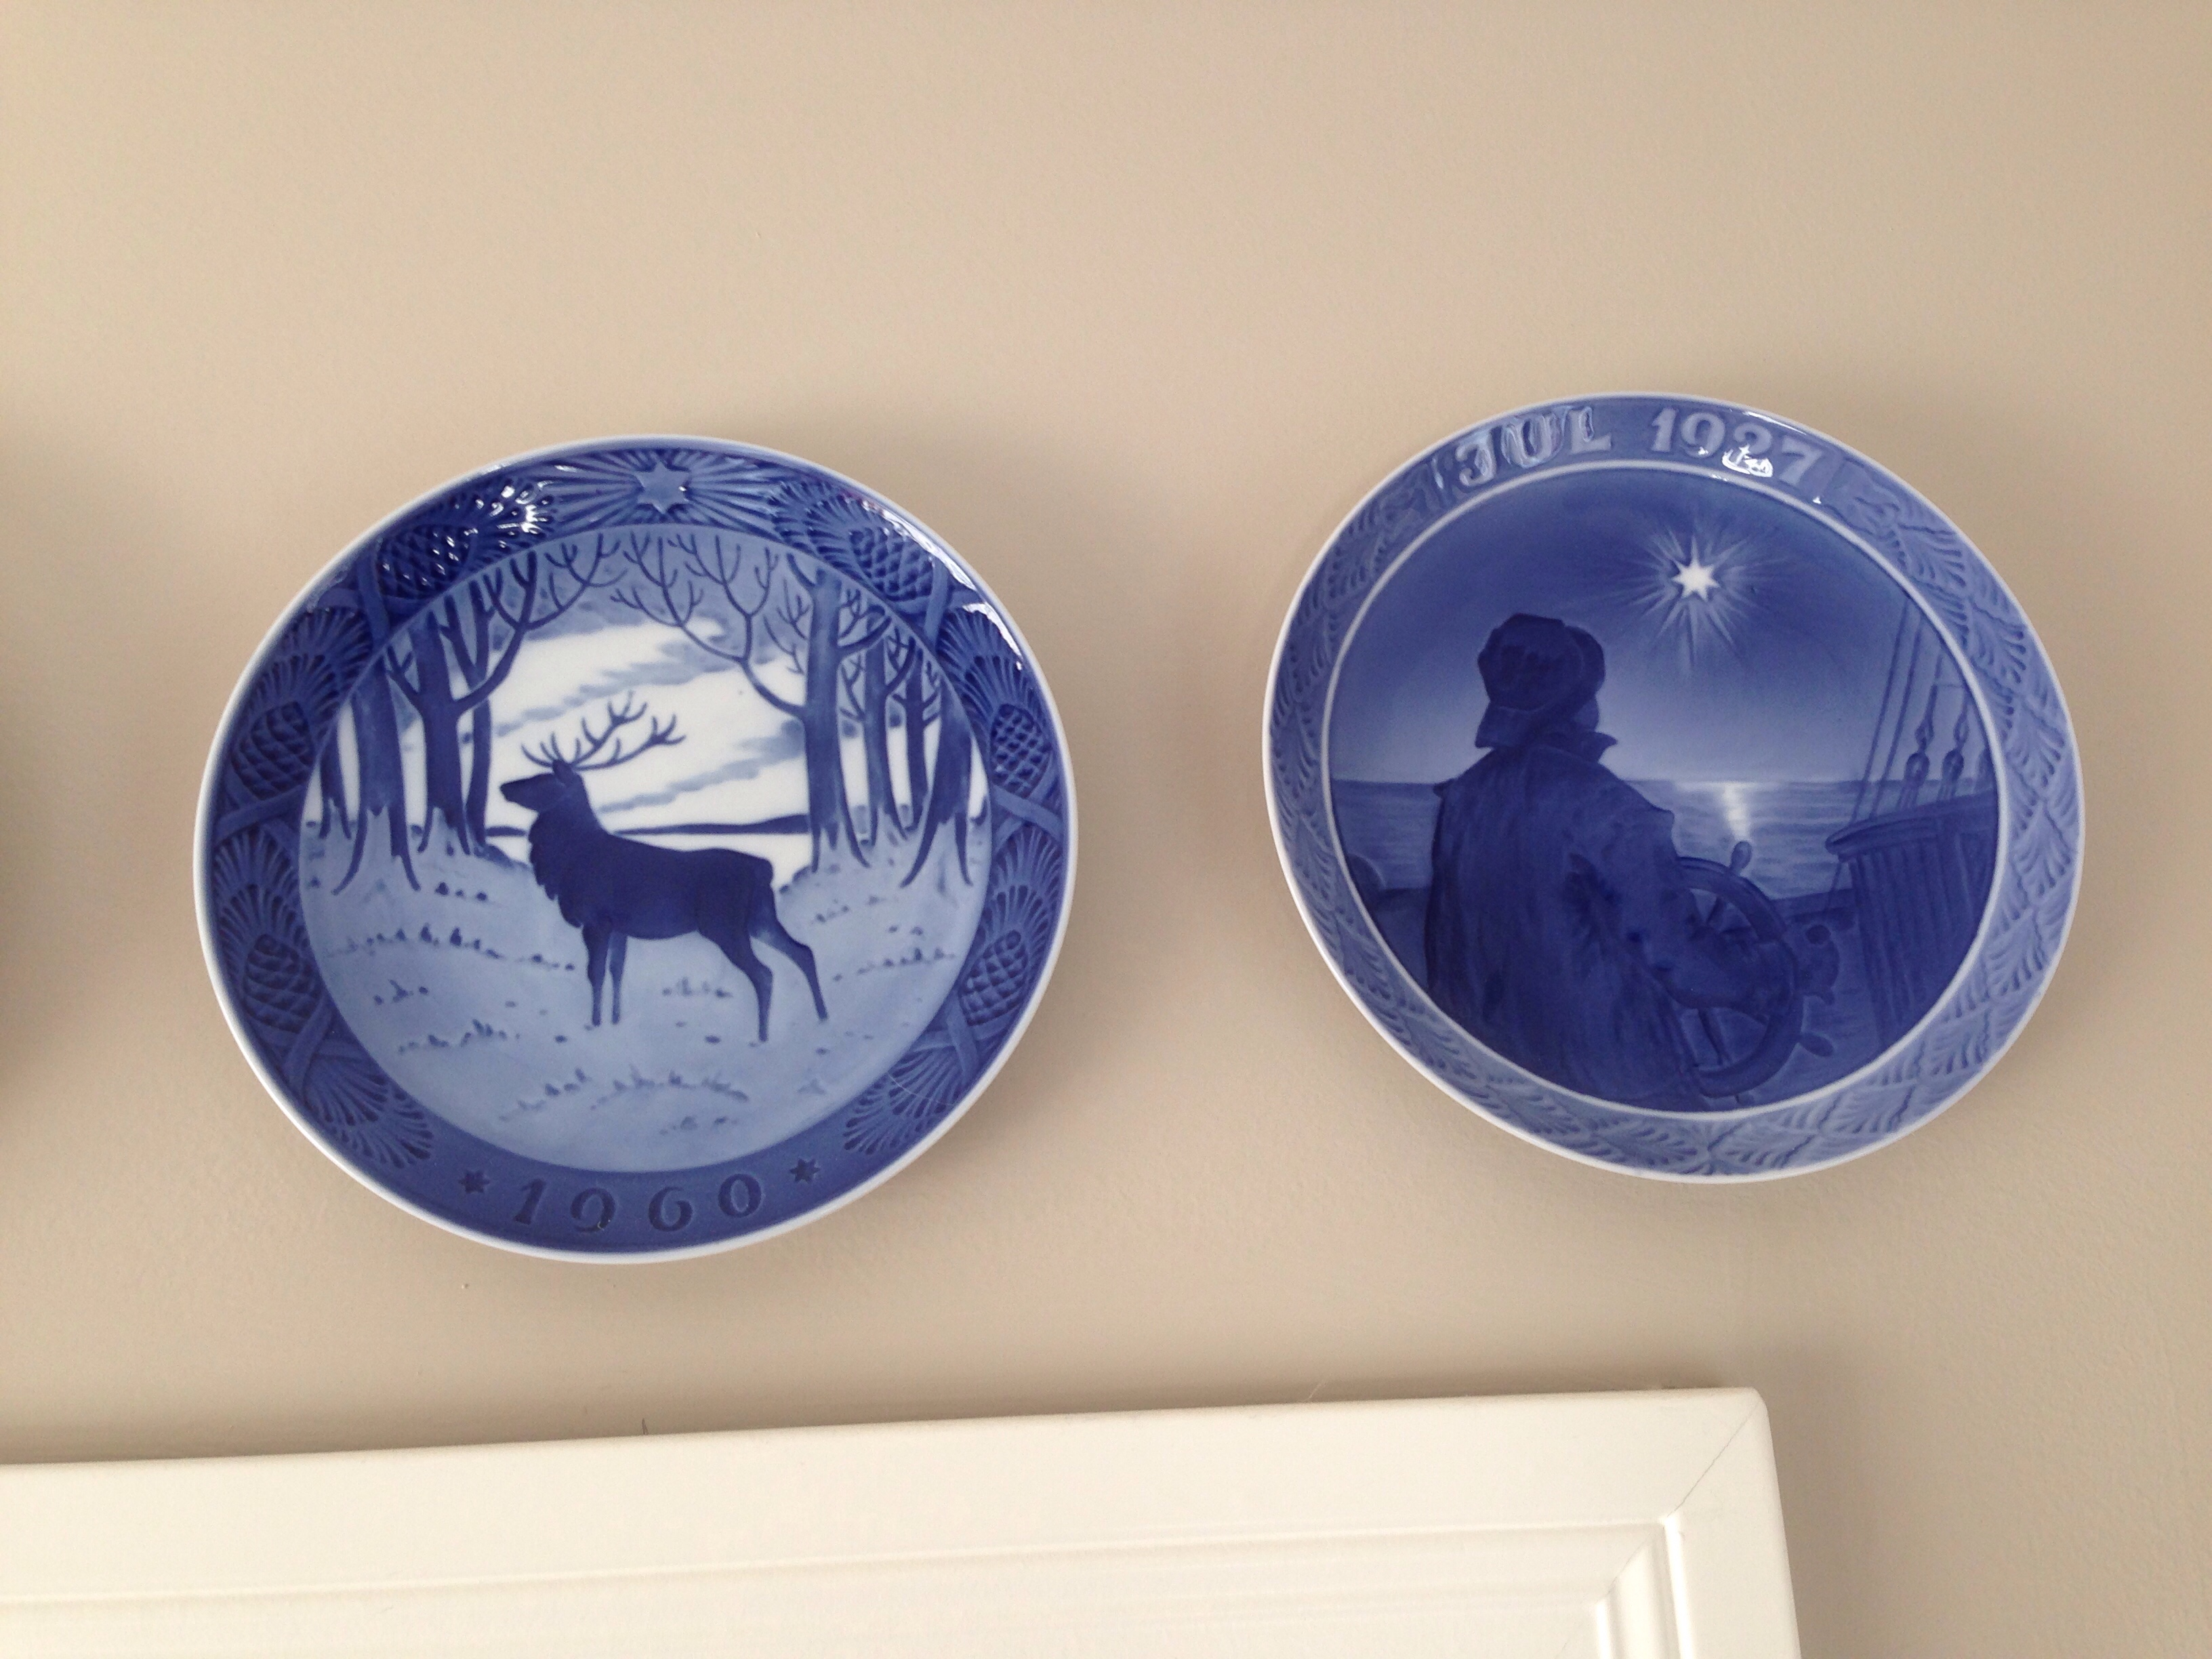 my husband and i both grew up seeing christmas plates like these in the houses of our grandparents they are a little old fashioned but we enjoy the way - Royal Copenhagen Christmas Plates